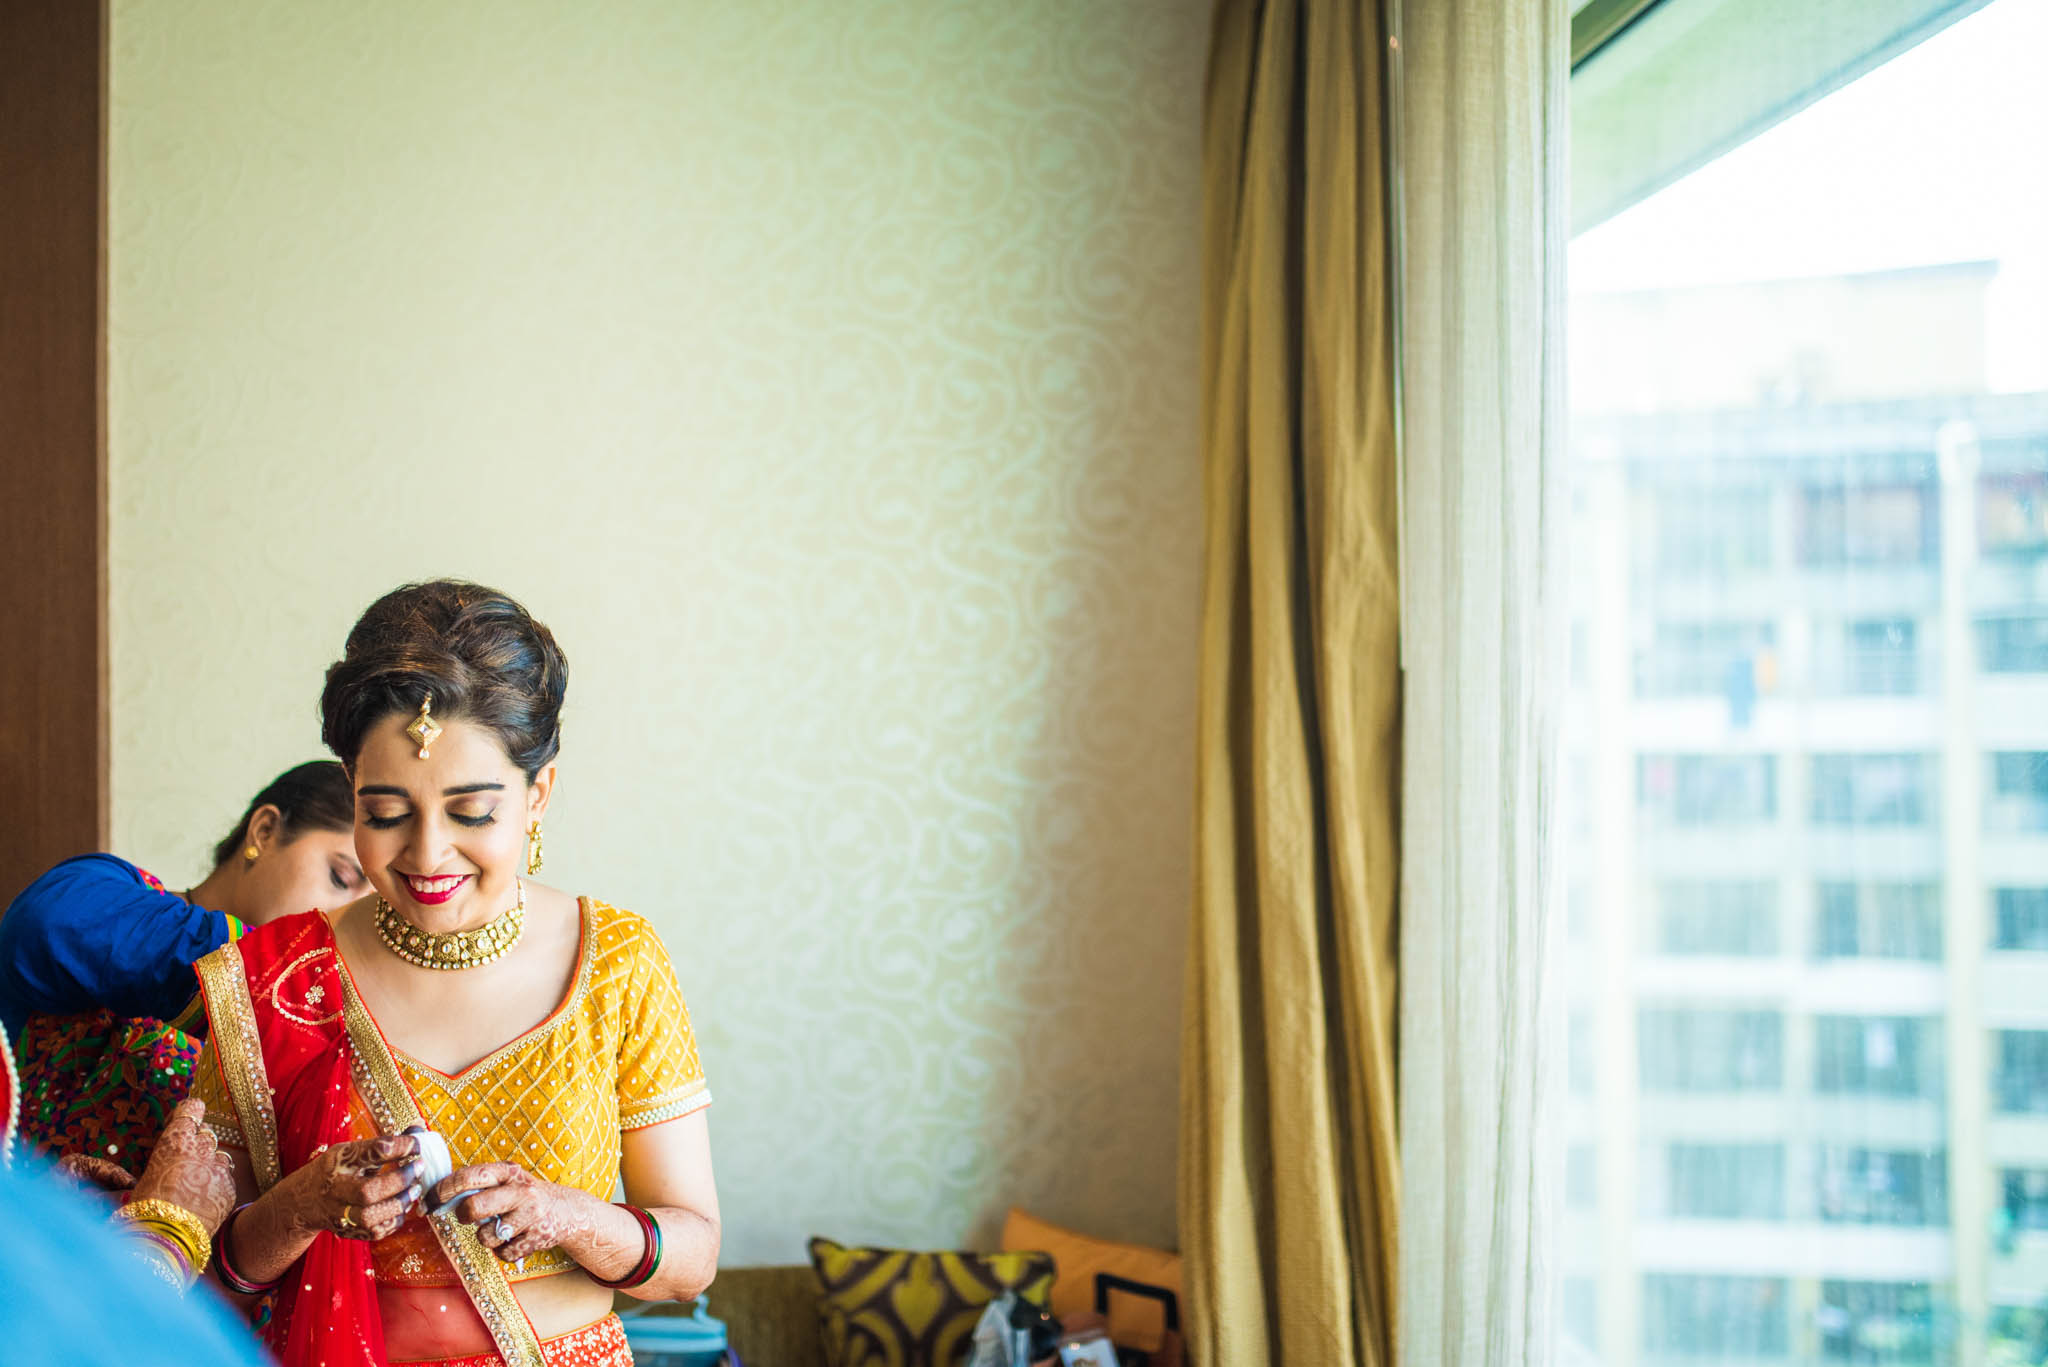 Makeup-room-bride-lehenga-whatknot-photography-52